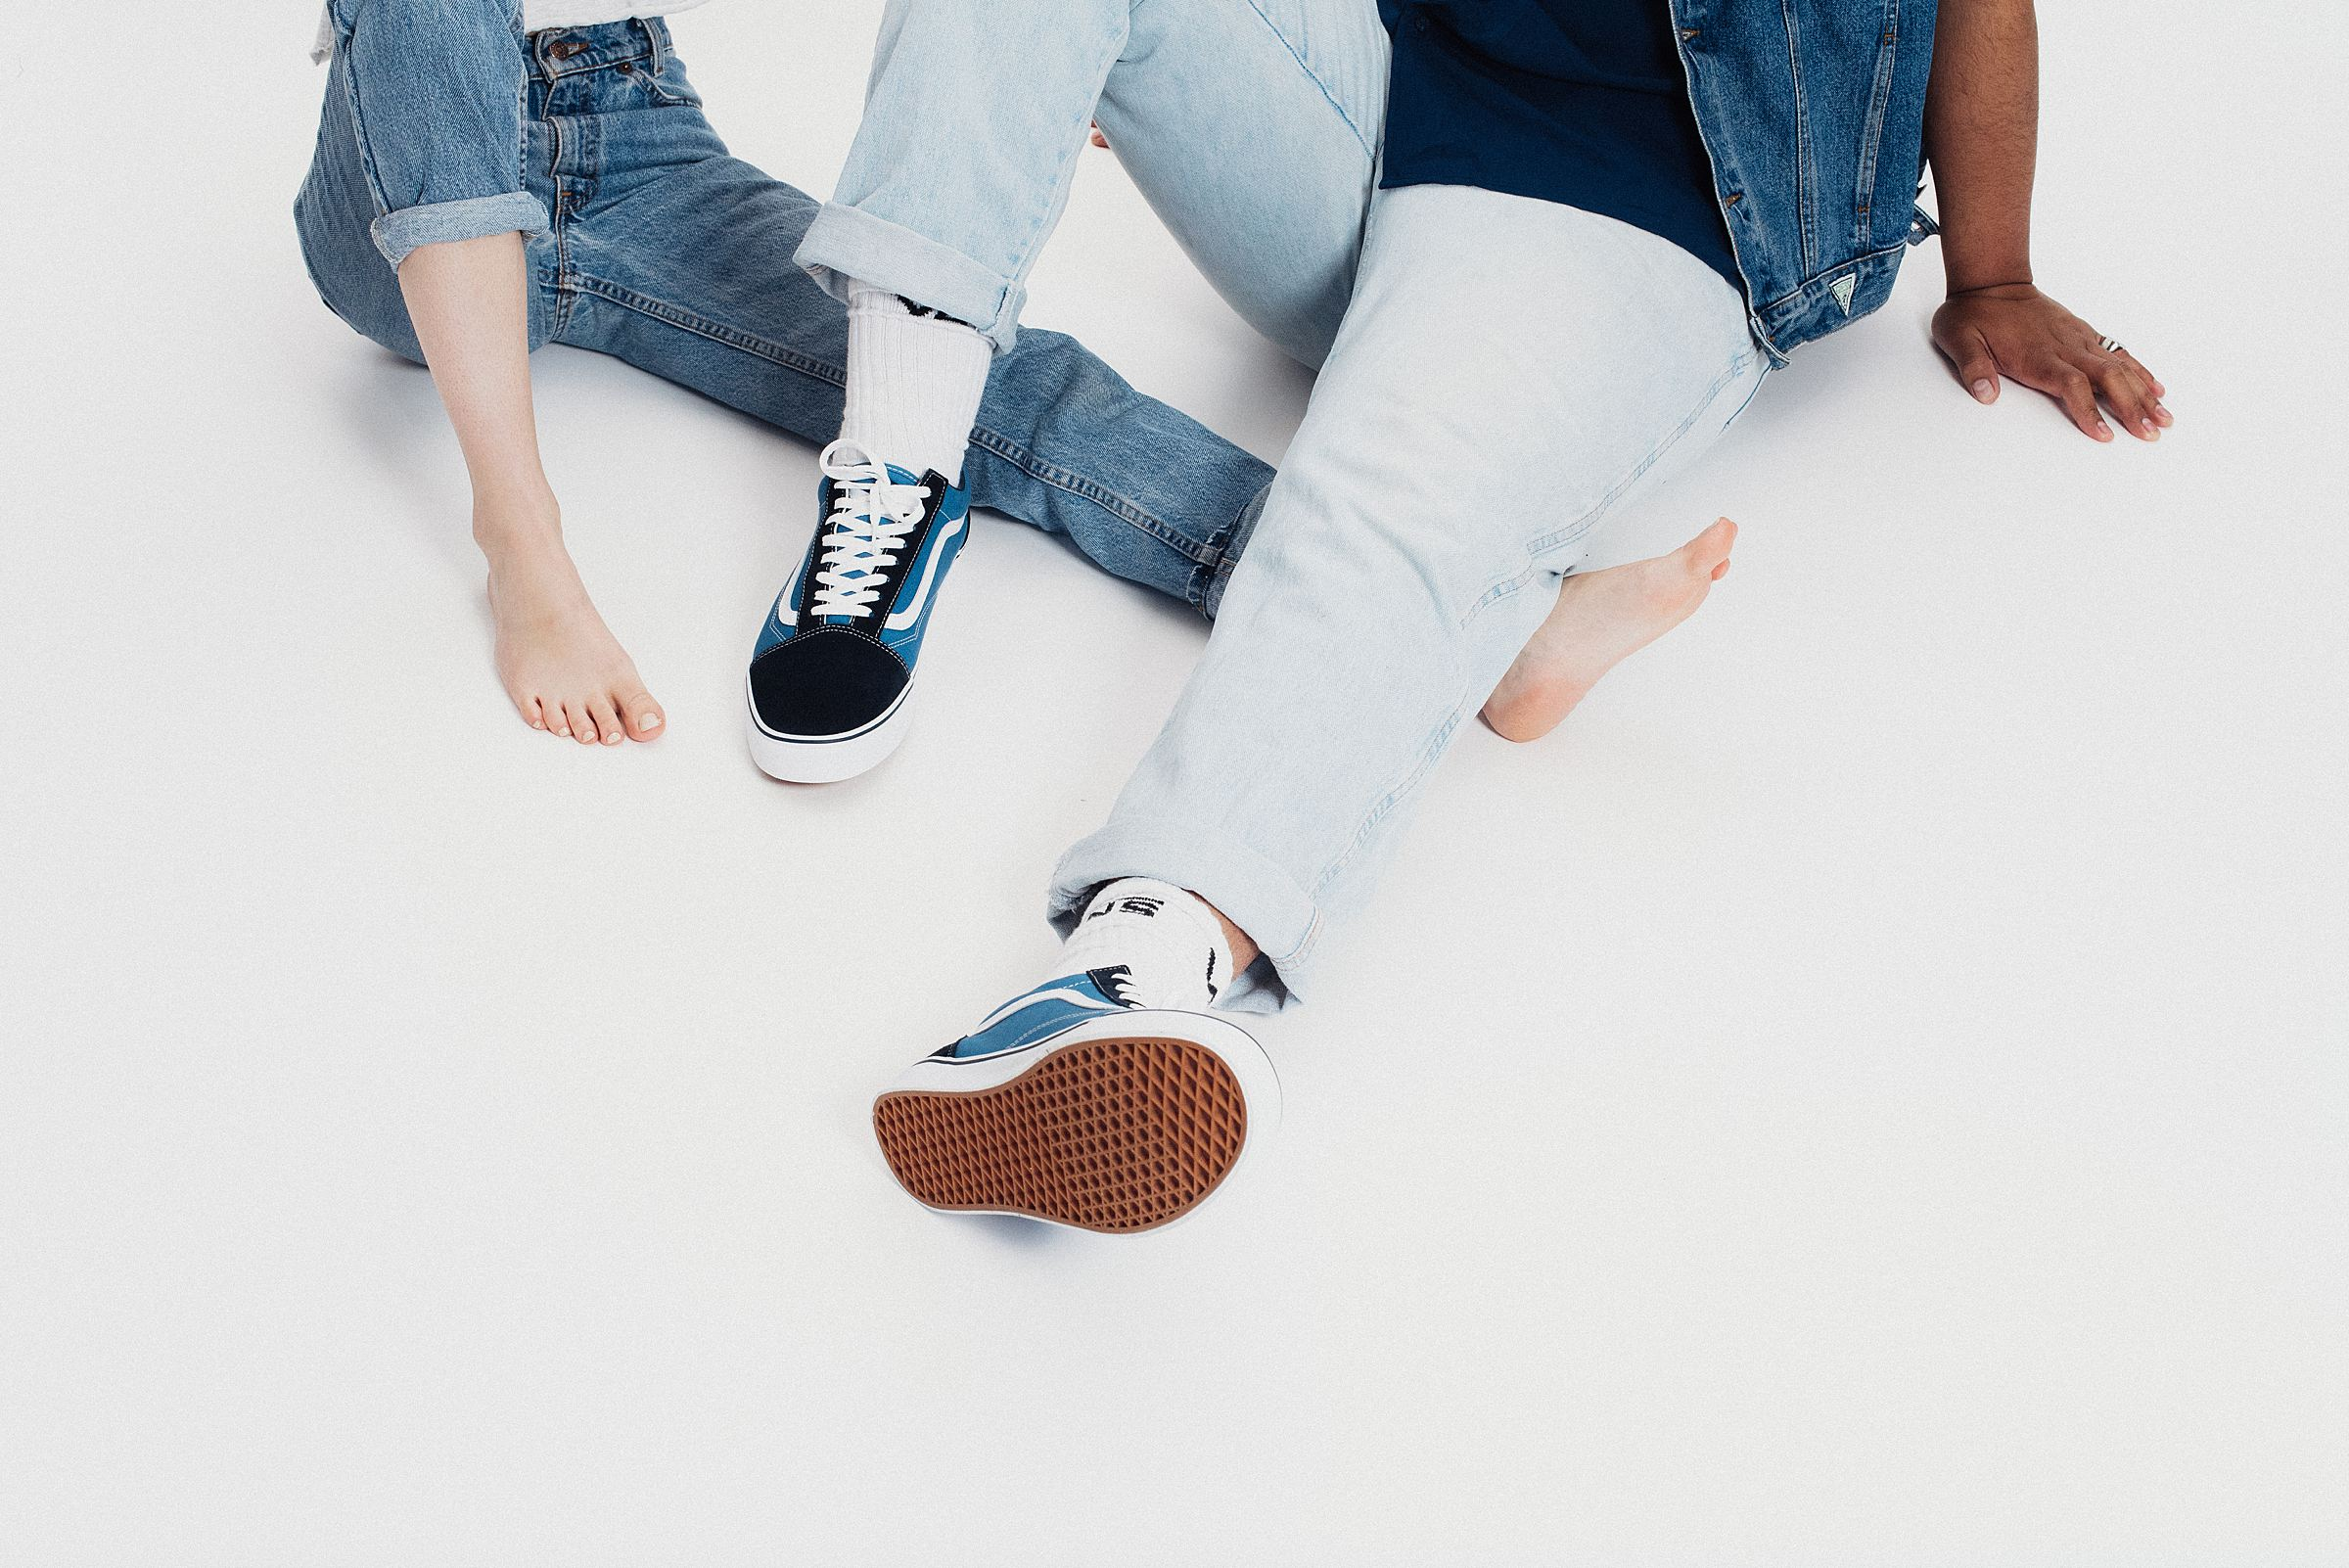 all-jean-couples-session_5392.jpg